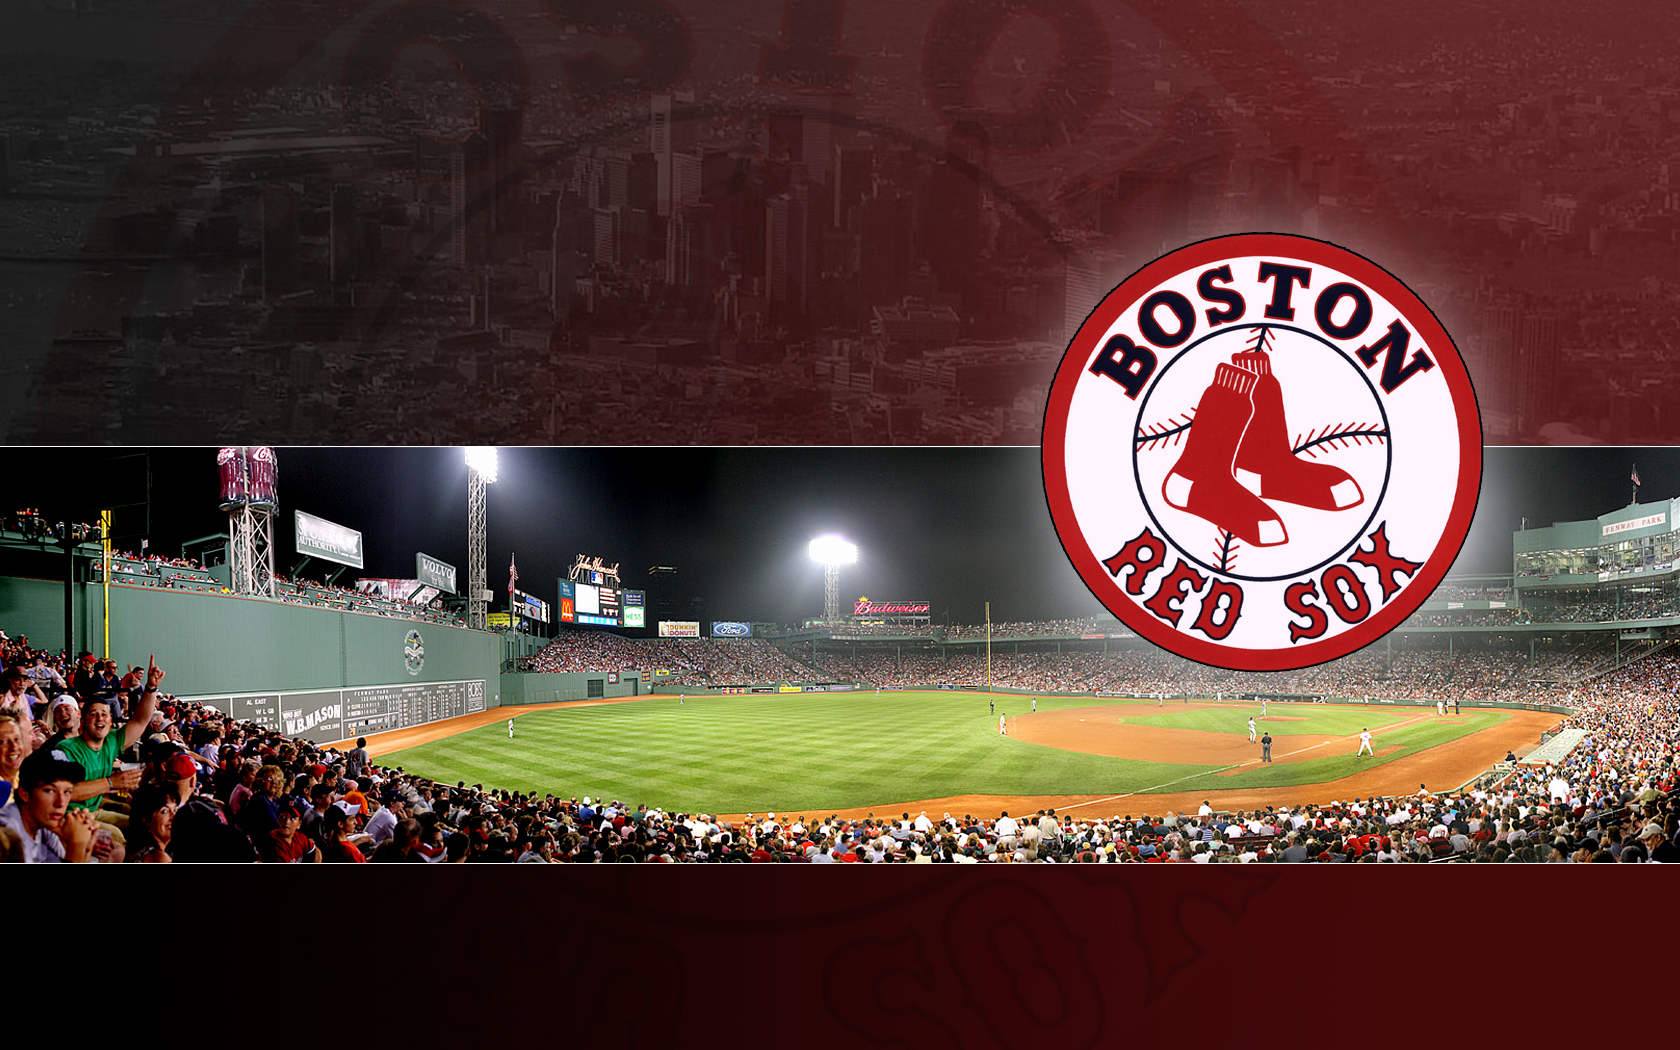 Boston Red Sox wallpapers Boston Red Sox background   Page 3 1680x1050